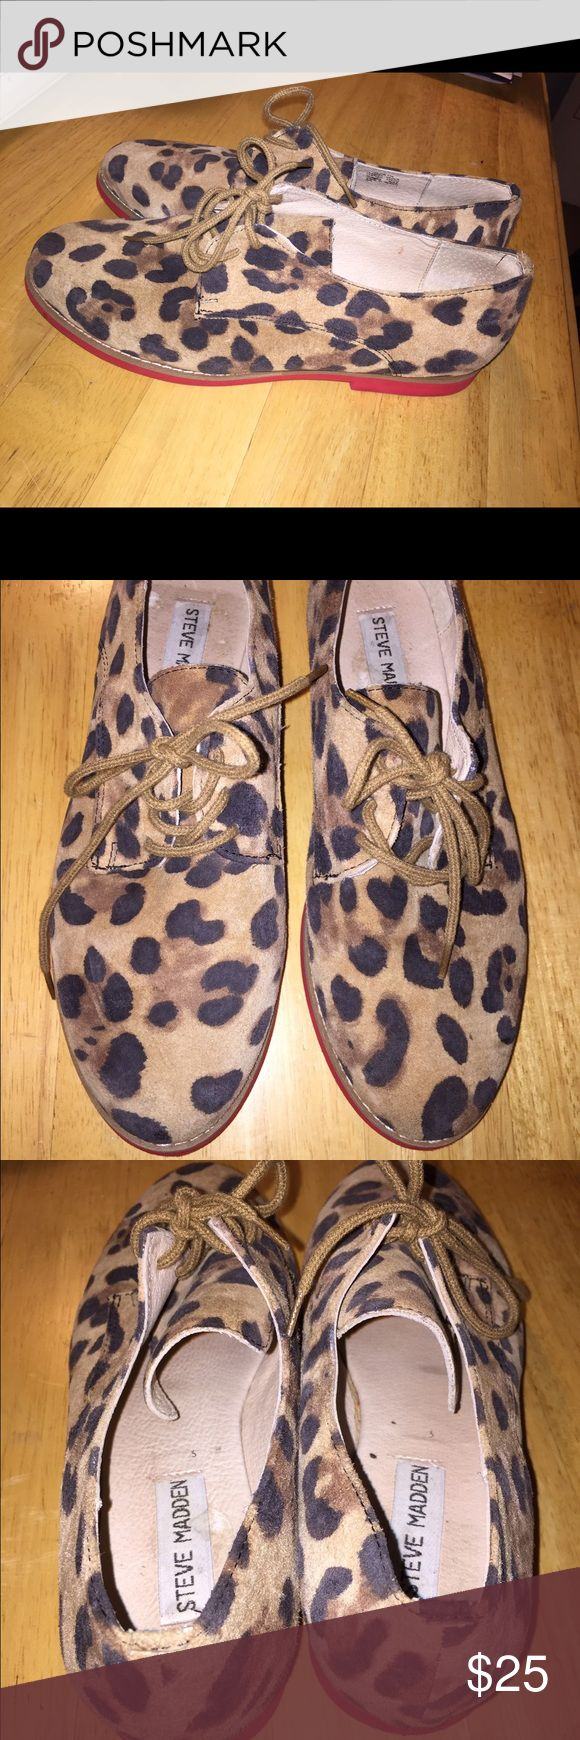 Steve Madden Cheetah with Red Sole Steve Madden Cheetah with Red Sole Steve Madden Shoes Sneakers